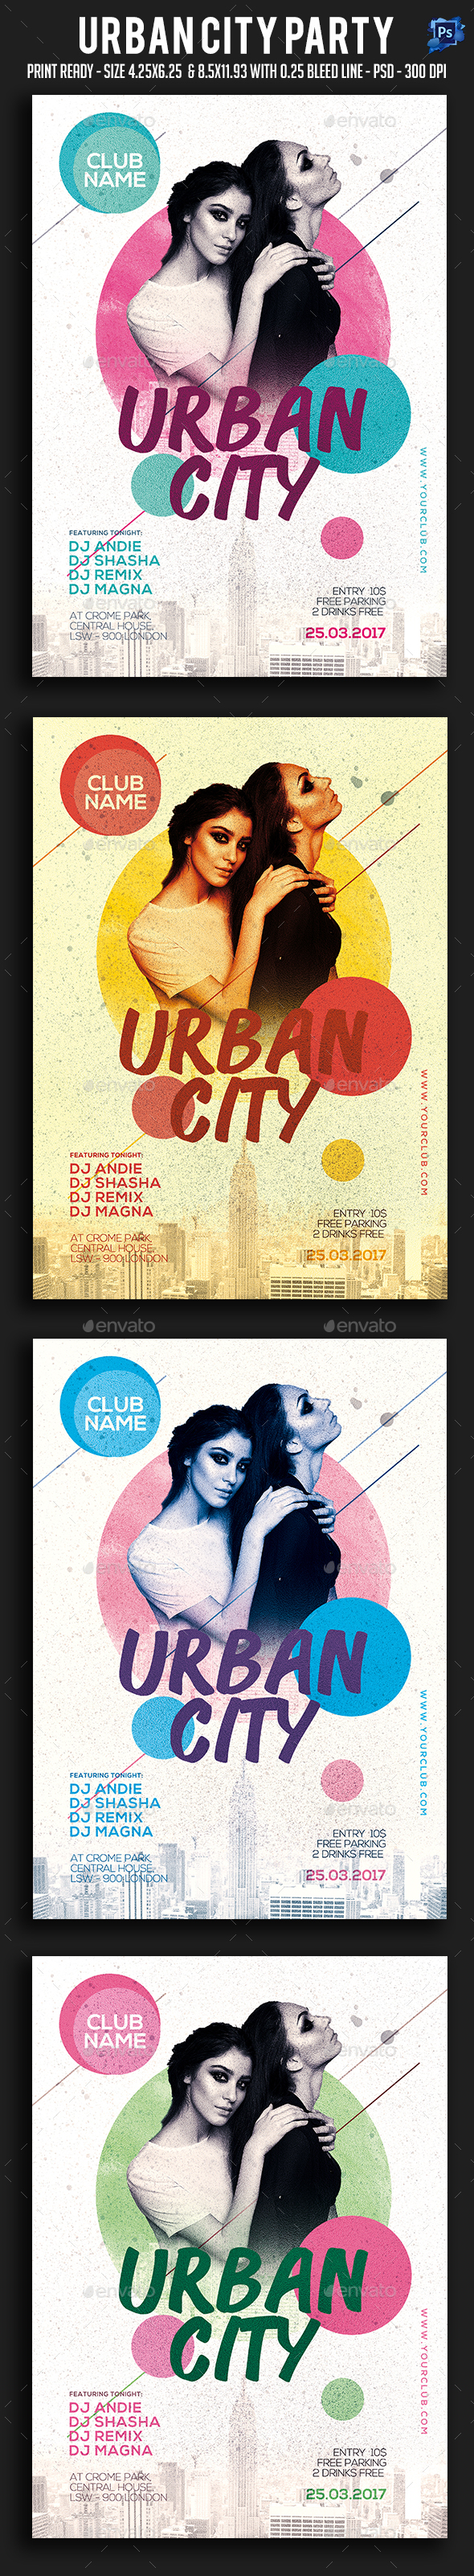 Urban City Party Flyer - Clubs & Parties Events